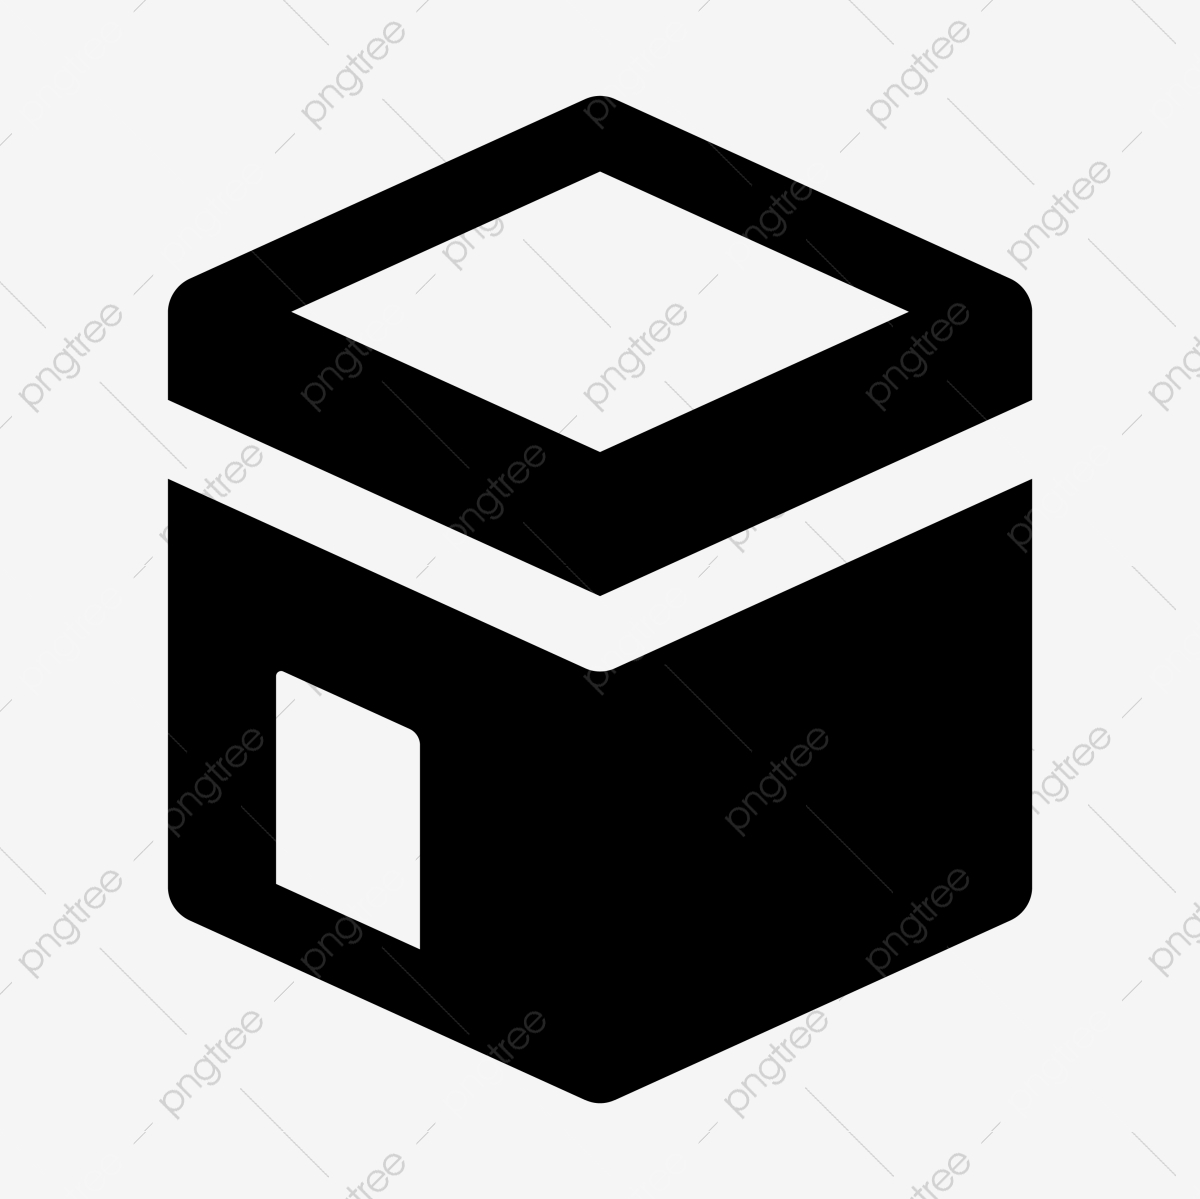 kabah glyph icon vector kabah hajj muslim png and vector with transparent background for free download https pngtree com freepng kabah glyph icon vector 5199595 html